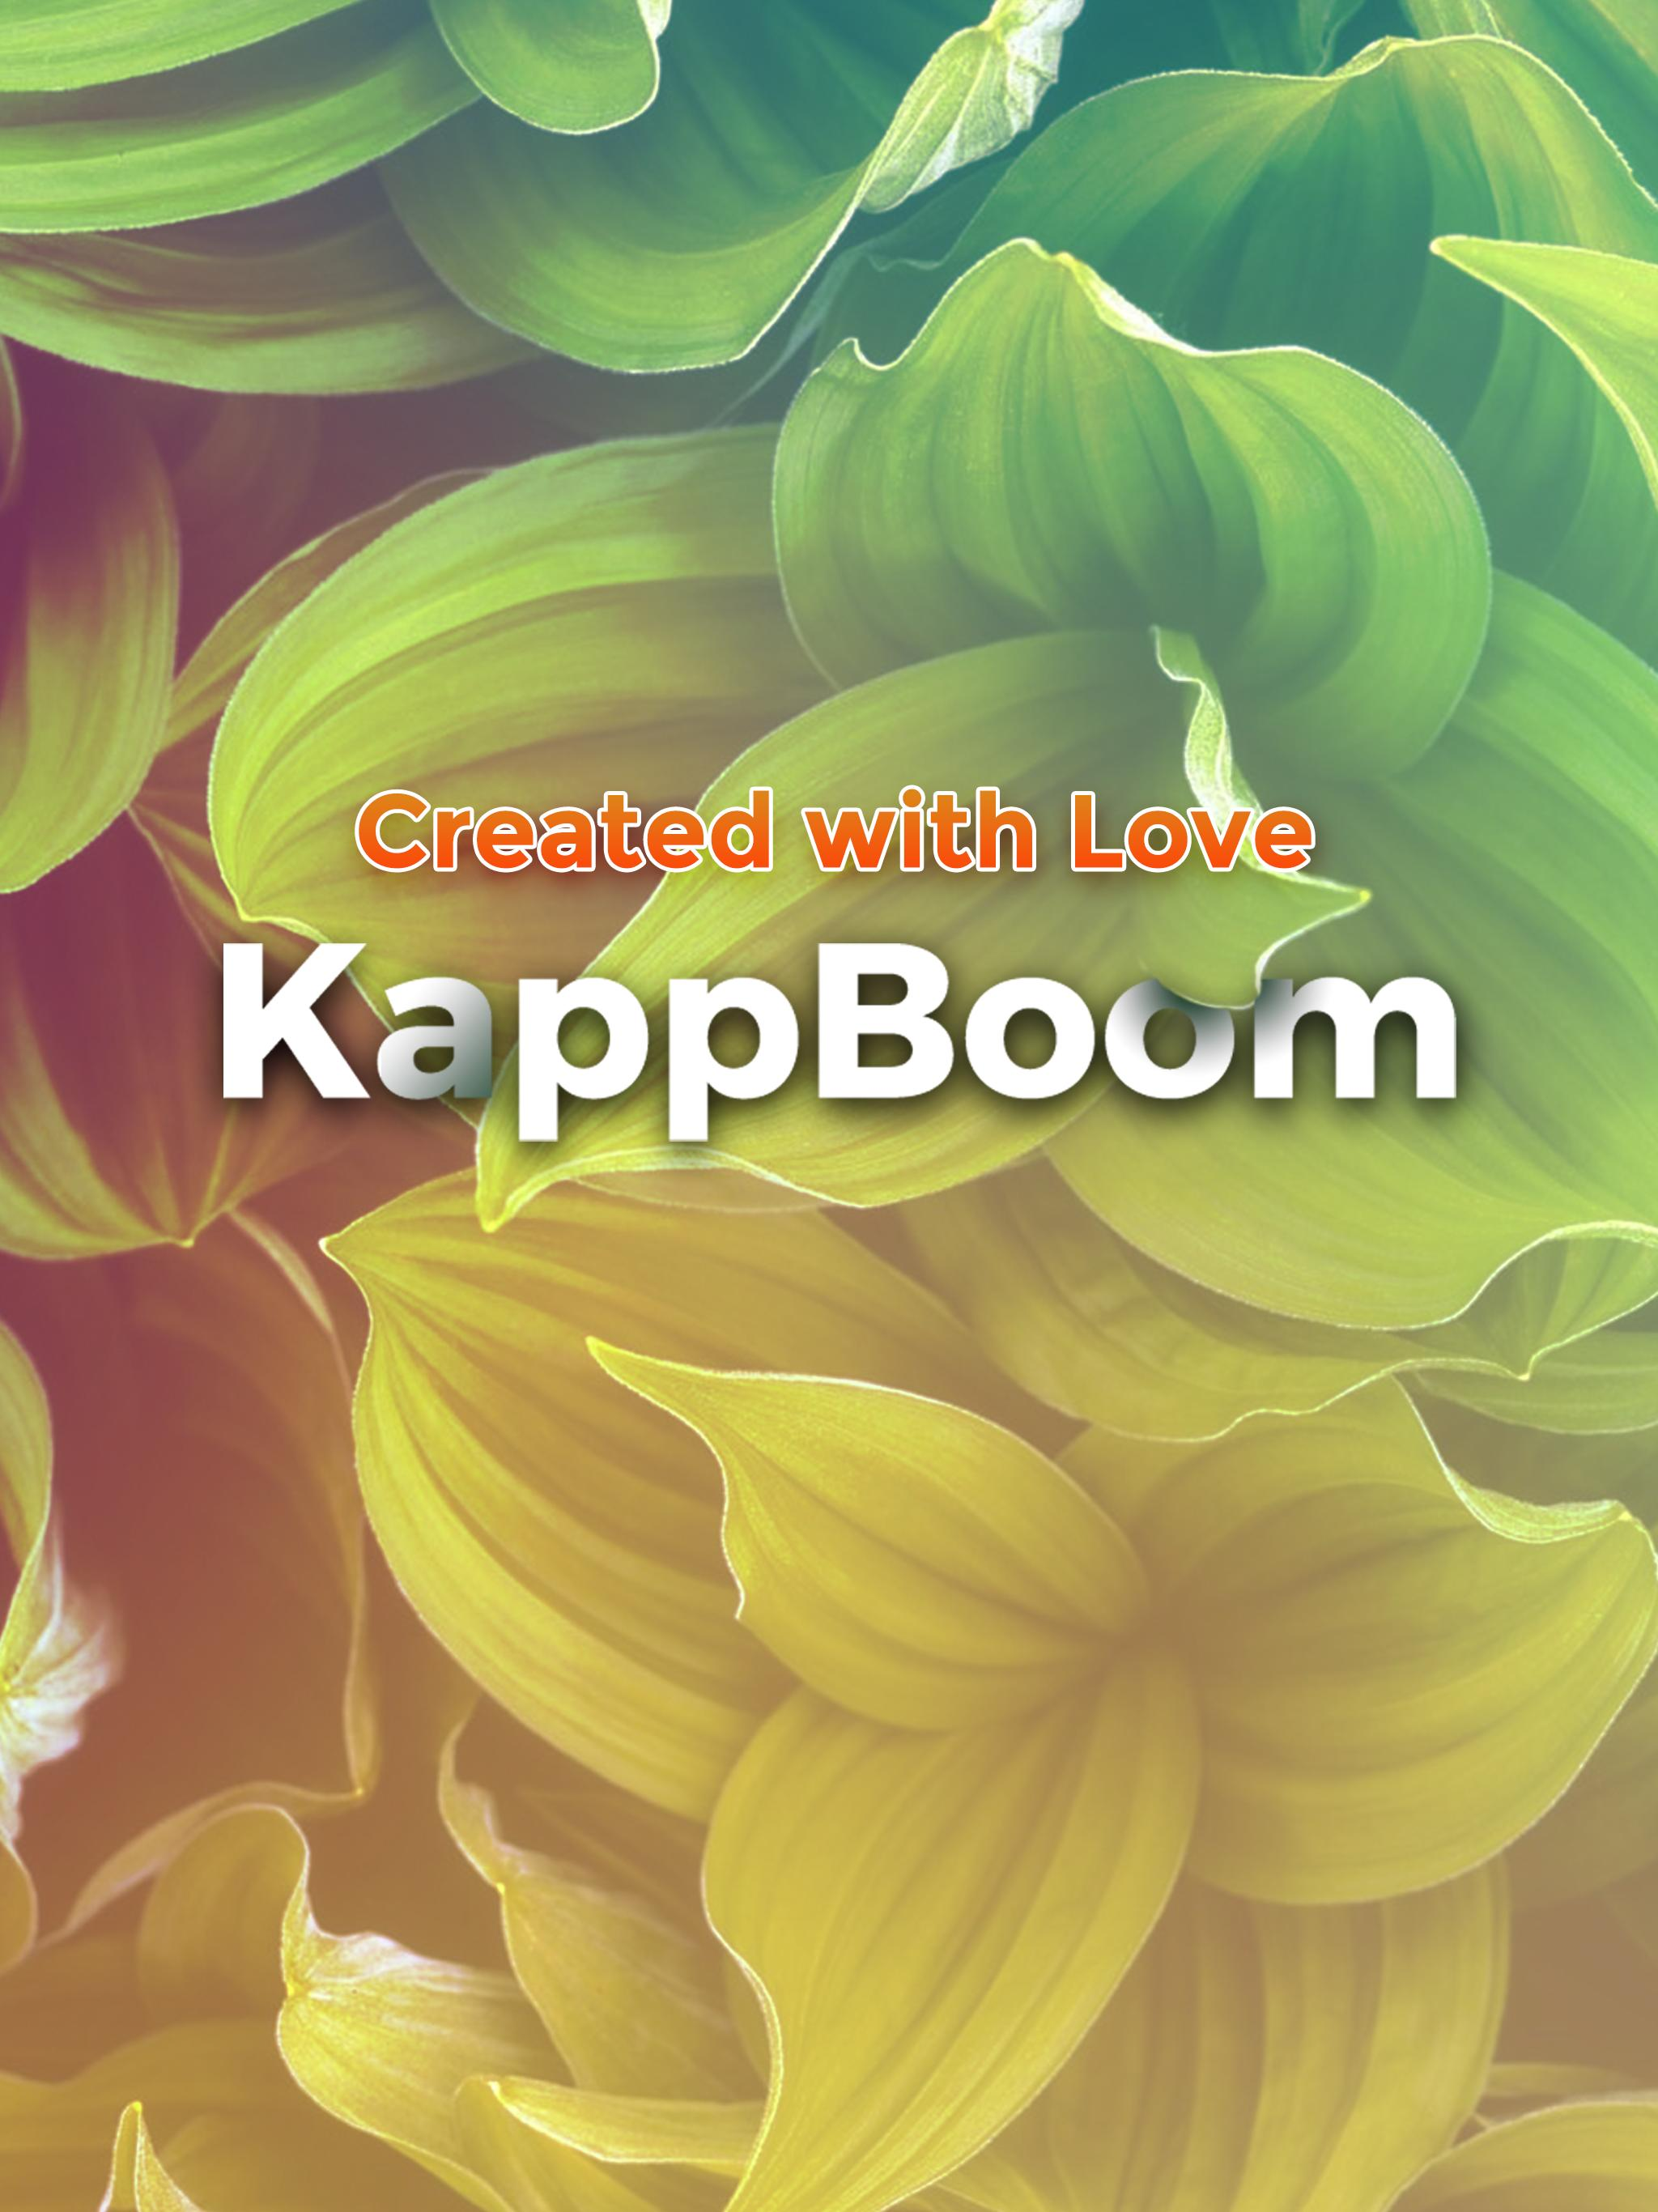 Kappboom - Cool Wallpapers & Background Wallpapers poster